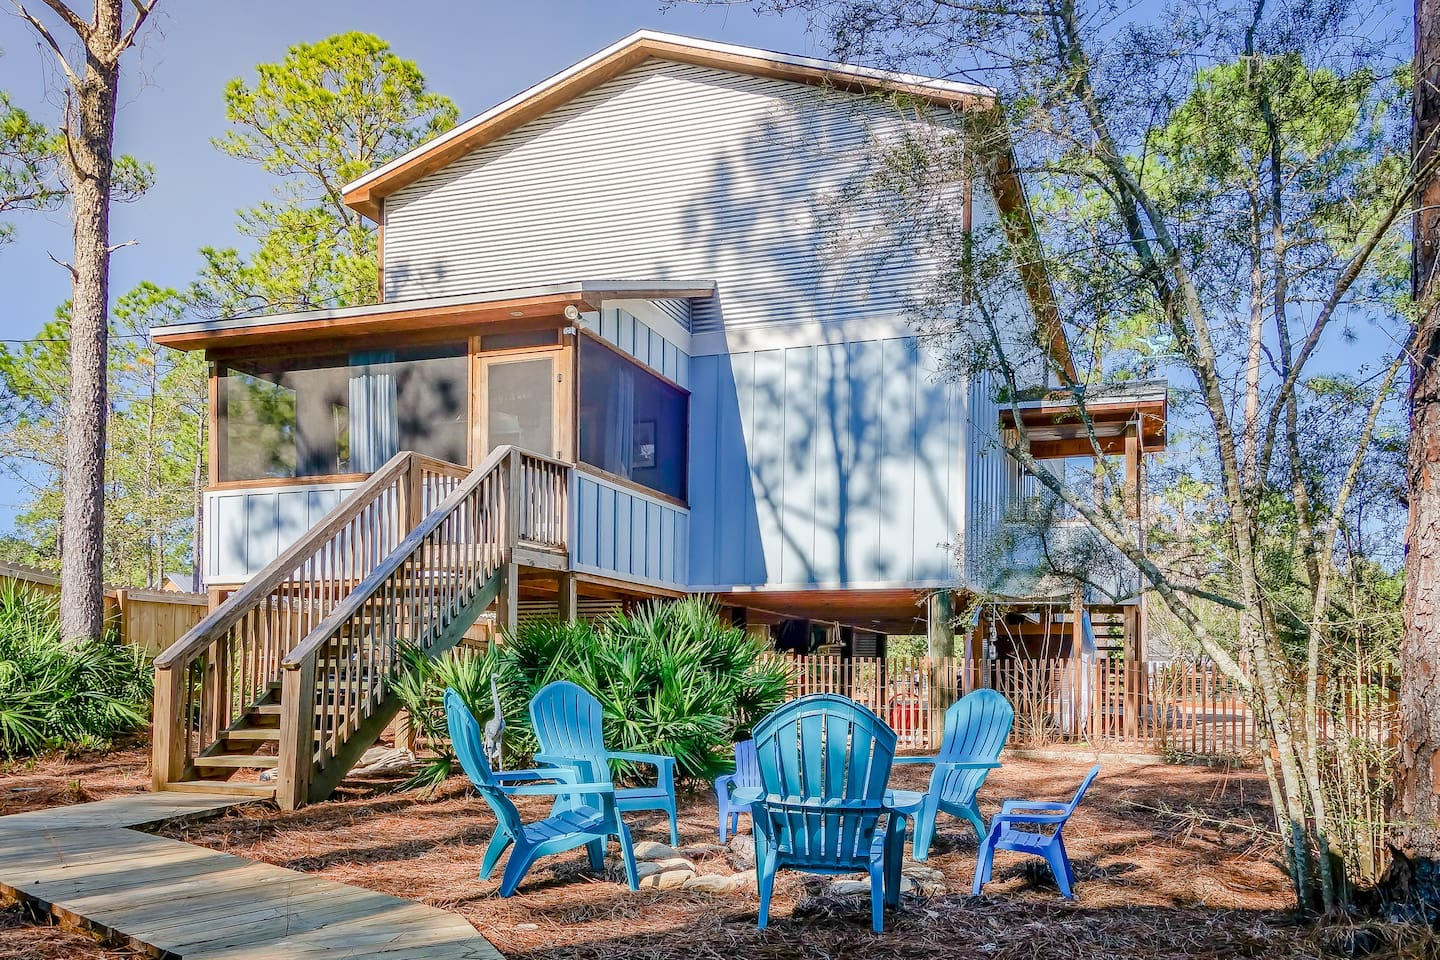 Welcome to Blue Bayou. Here is the back of the house facing the bayou. Enjoy grilling out, make s'mores on the bonfire, sit by the dock, or swing or hammock on the screened in porch!